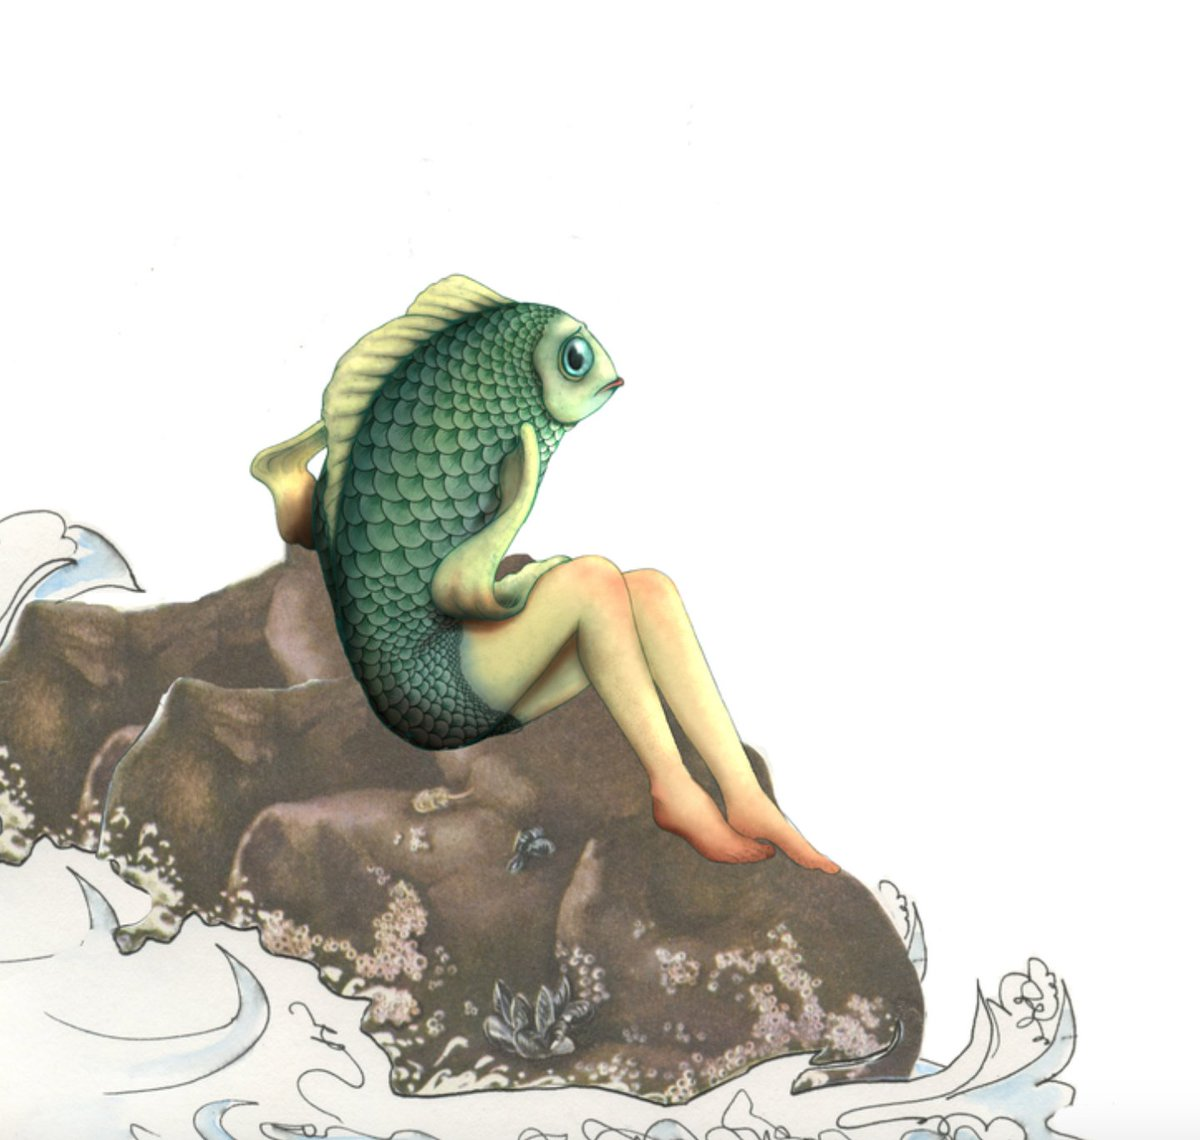 RT @hitRECord: Animators, let's bring the tale of this sad mermaid to life — https://t.co/OL4bfMJEur https://t.co/MRIyqv6VYj